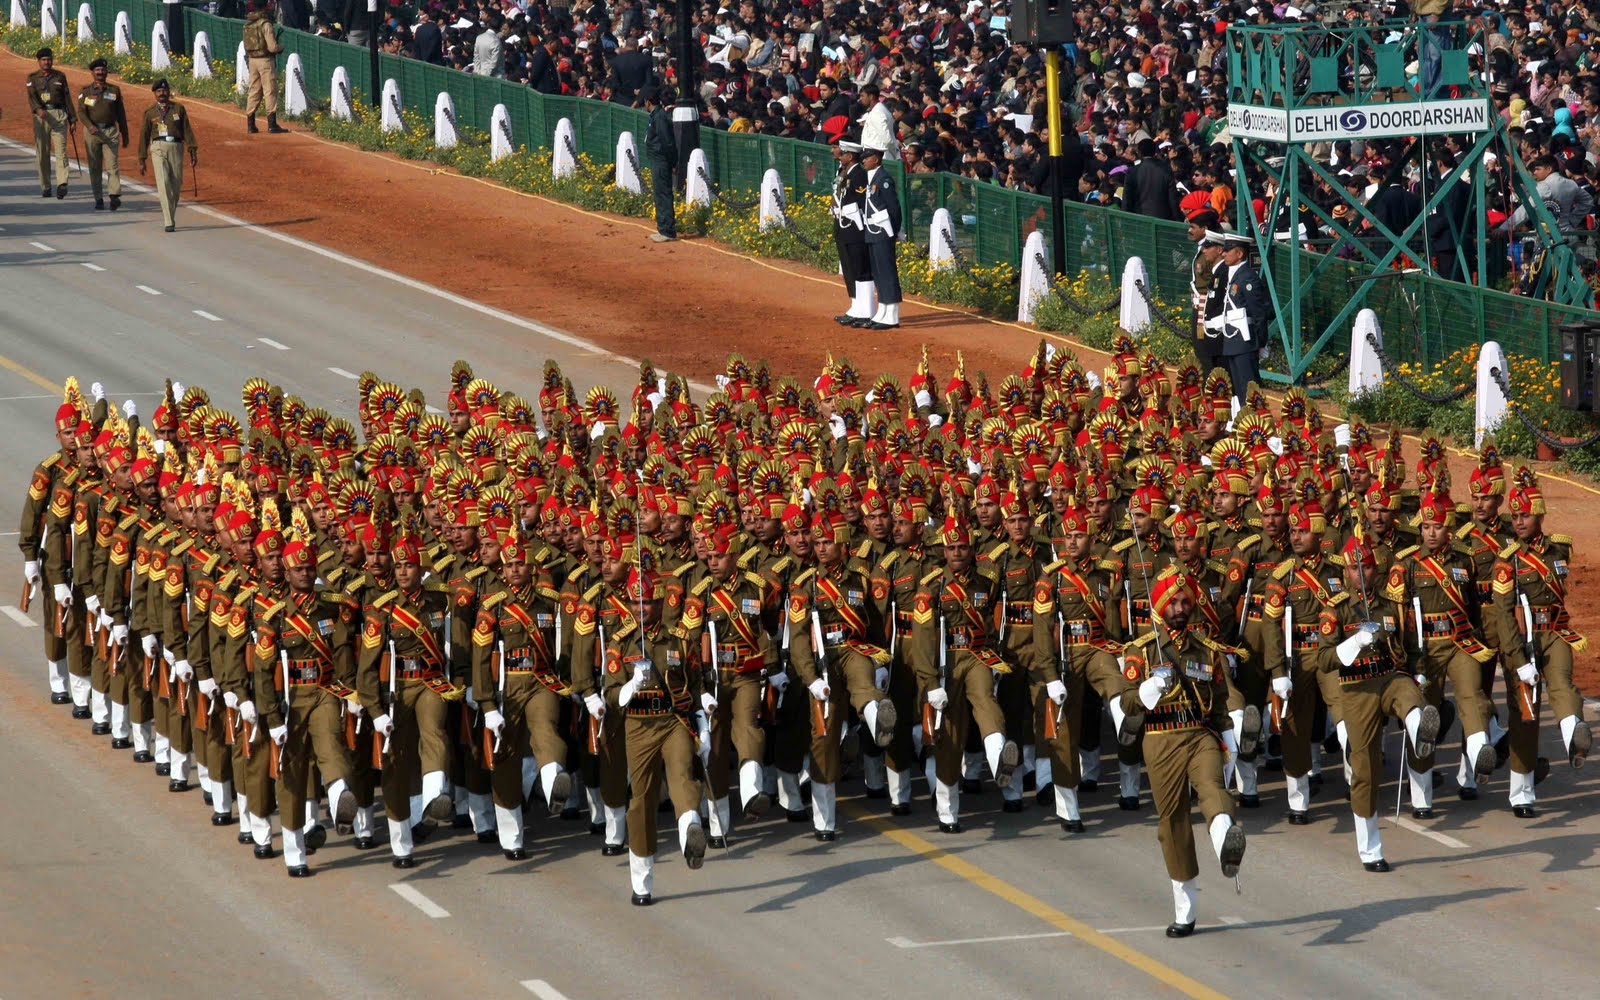 essay on republic day celebration Republic day essay 2018 : here i have big surprise for the states of india like as punjab, gujarat, maharastra, uttar pradesh, and west bengal.